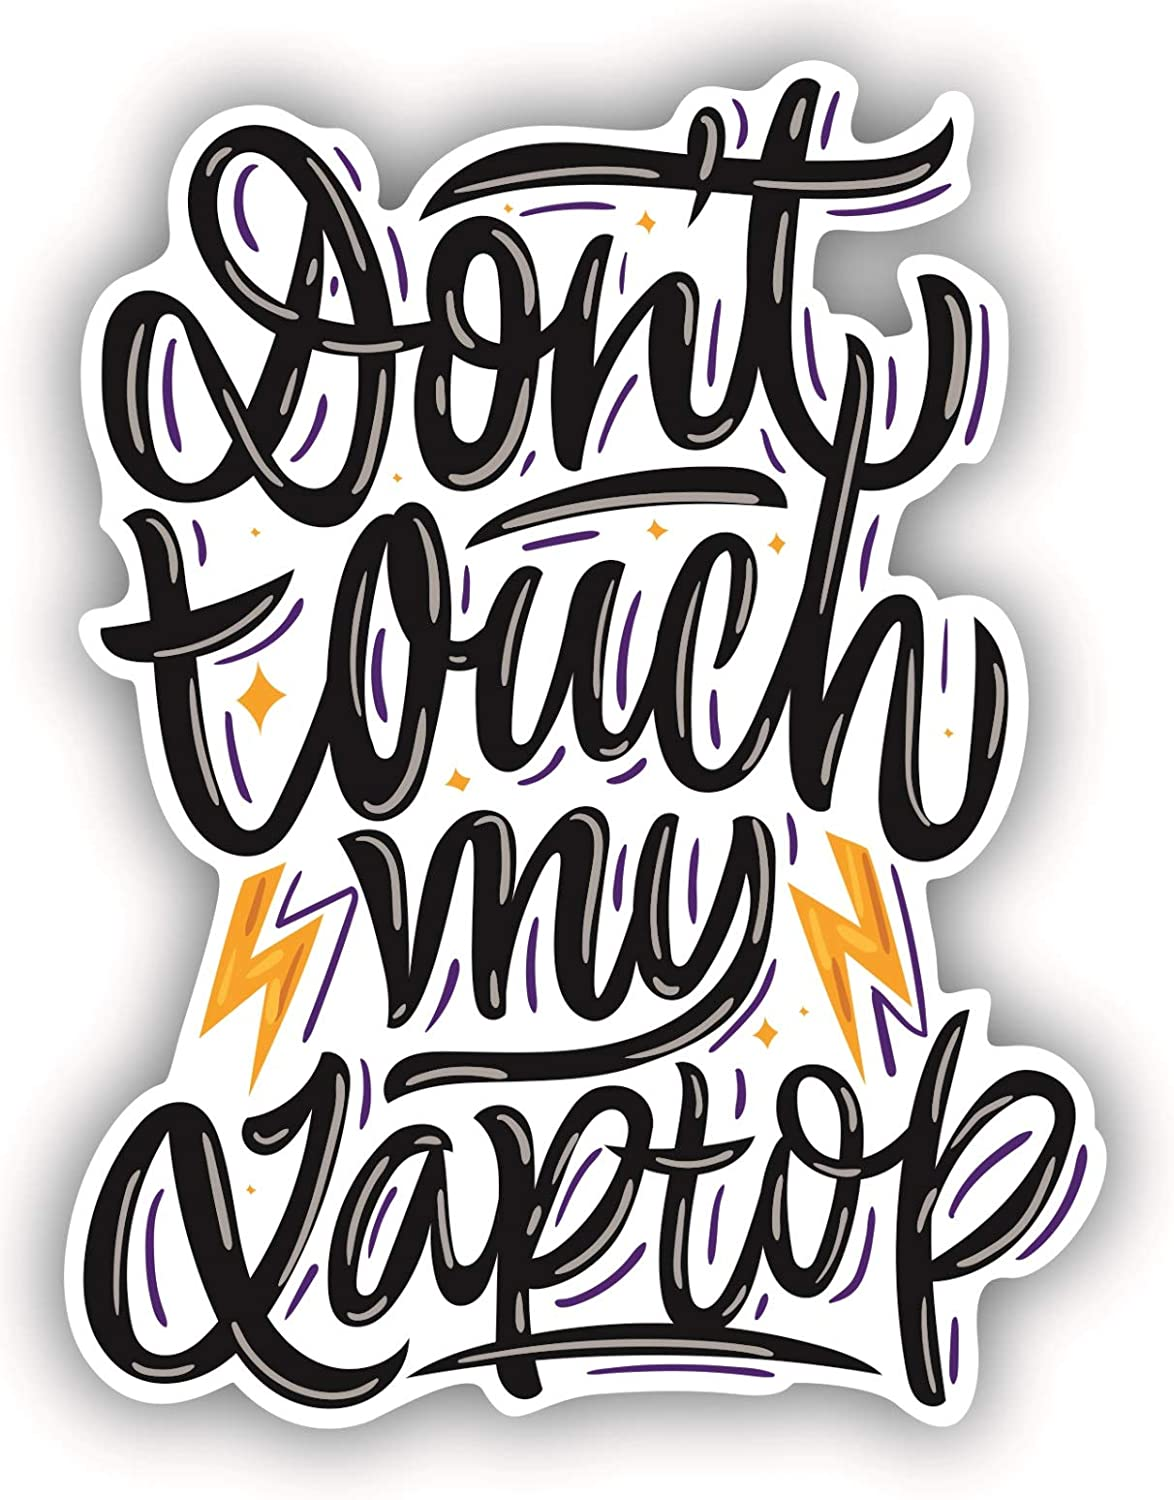 Do Not Touch My Laptop Sticker Power Stickers for Women Vinyl Stickers MacBook Decals Skins, Warning Sticker Quote Funny Inspirational Decals Black and White Stickers Trackpad (3.1 Inches, Black)